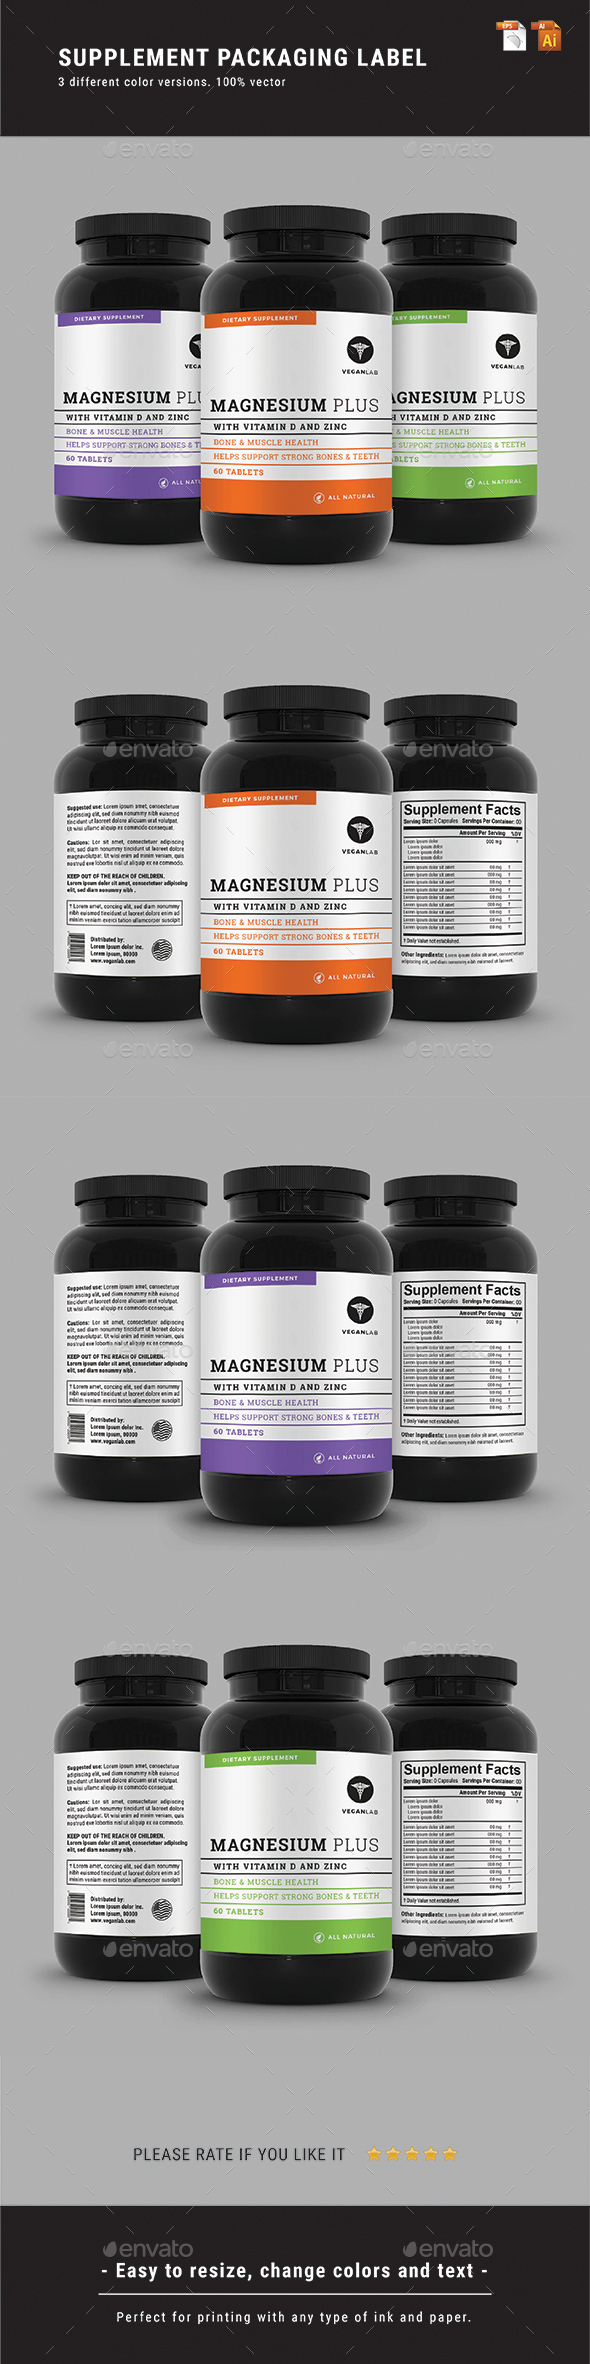 GraphicRiver Supplement Packaging Label 20997408